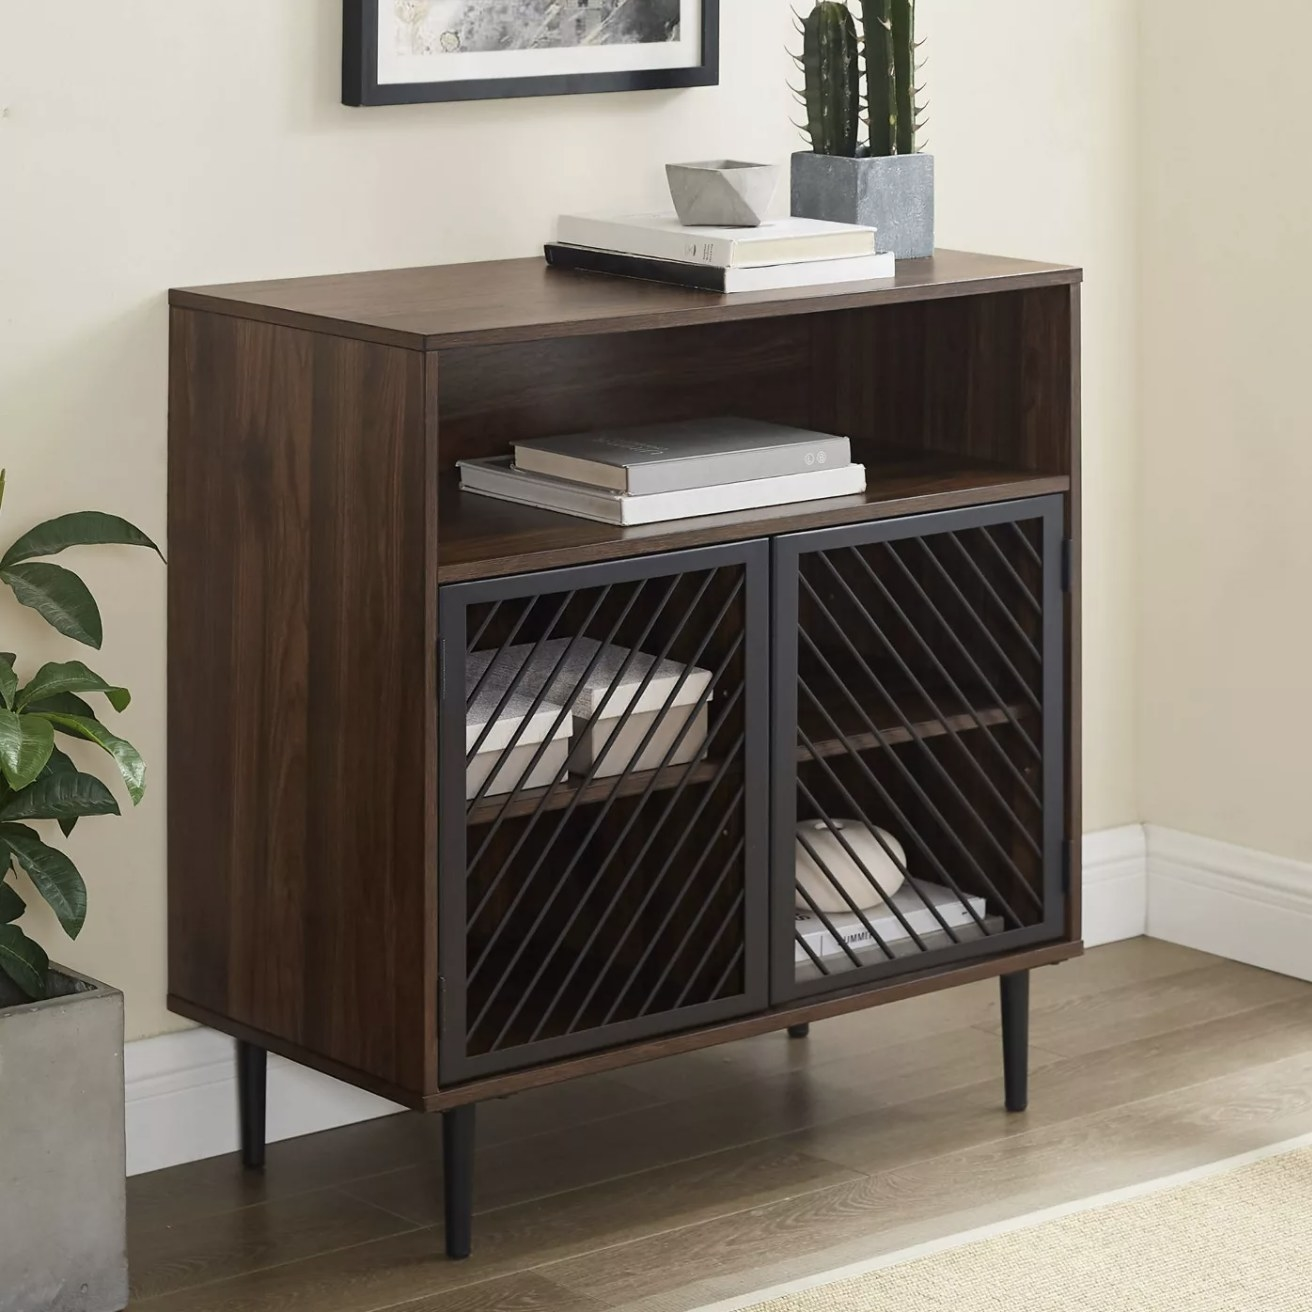 A dark walnut accent cabinet with see-through doors